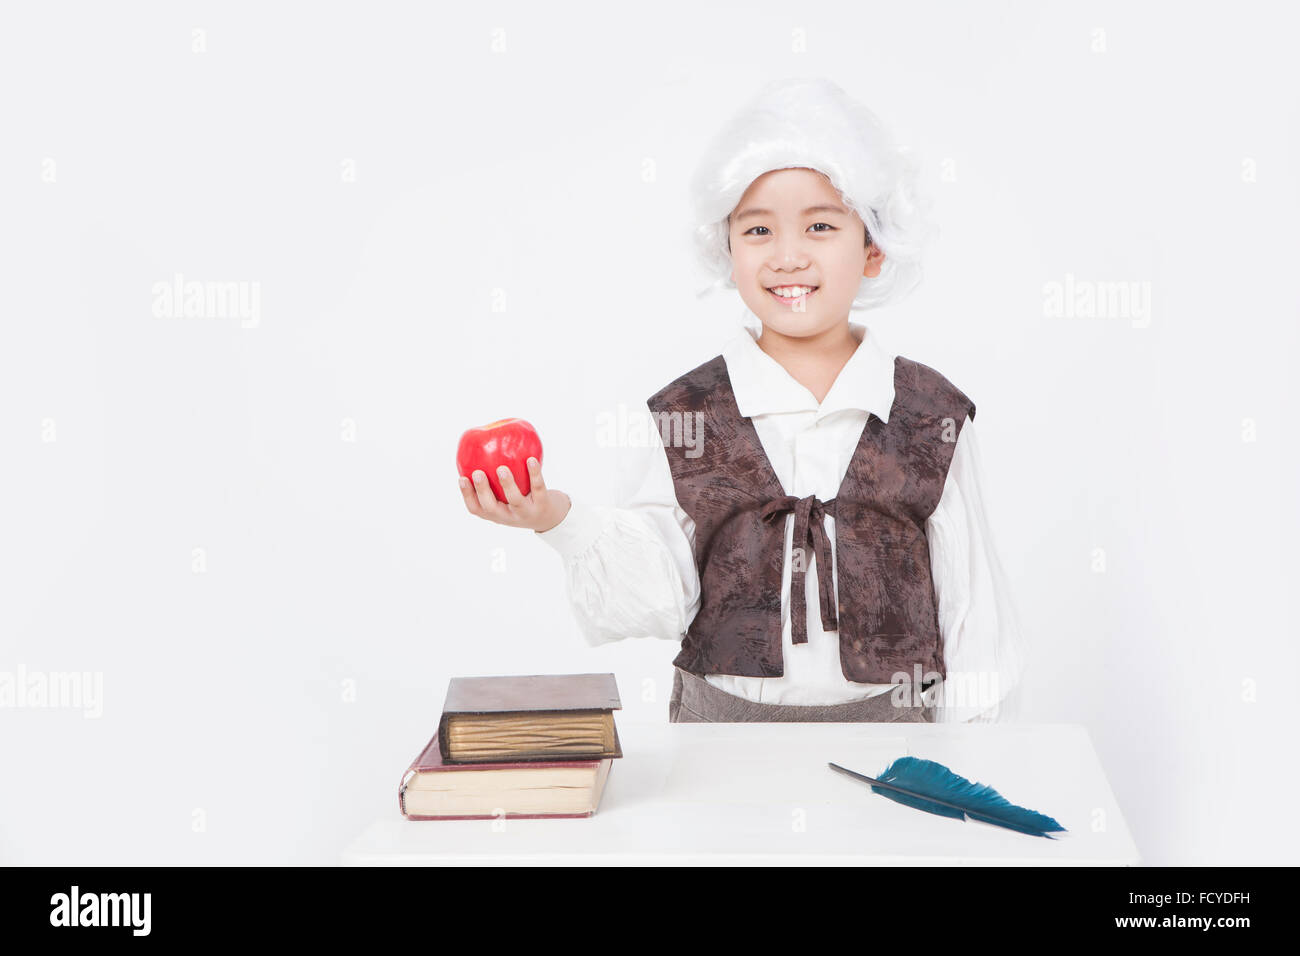 Boy in a classical scholar style holding an apple at desk with old books and a feather pen - Stock Image